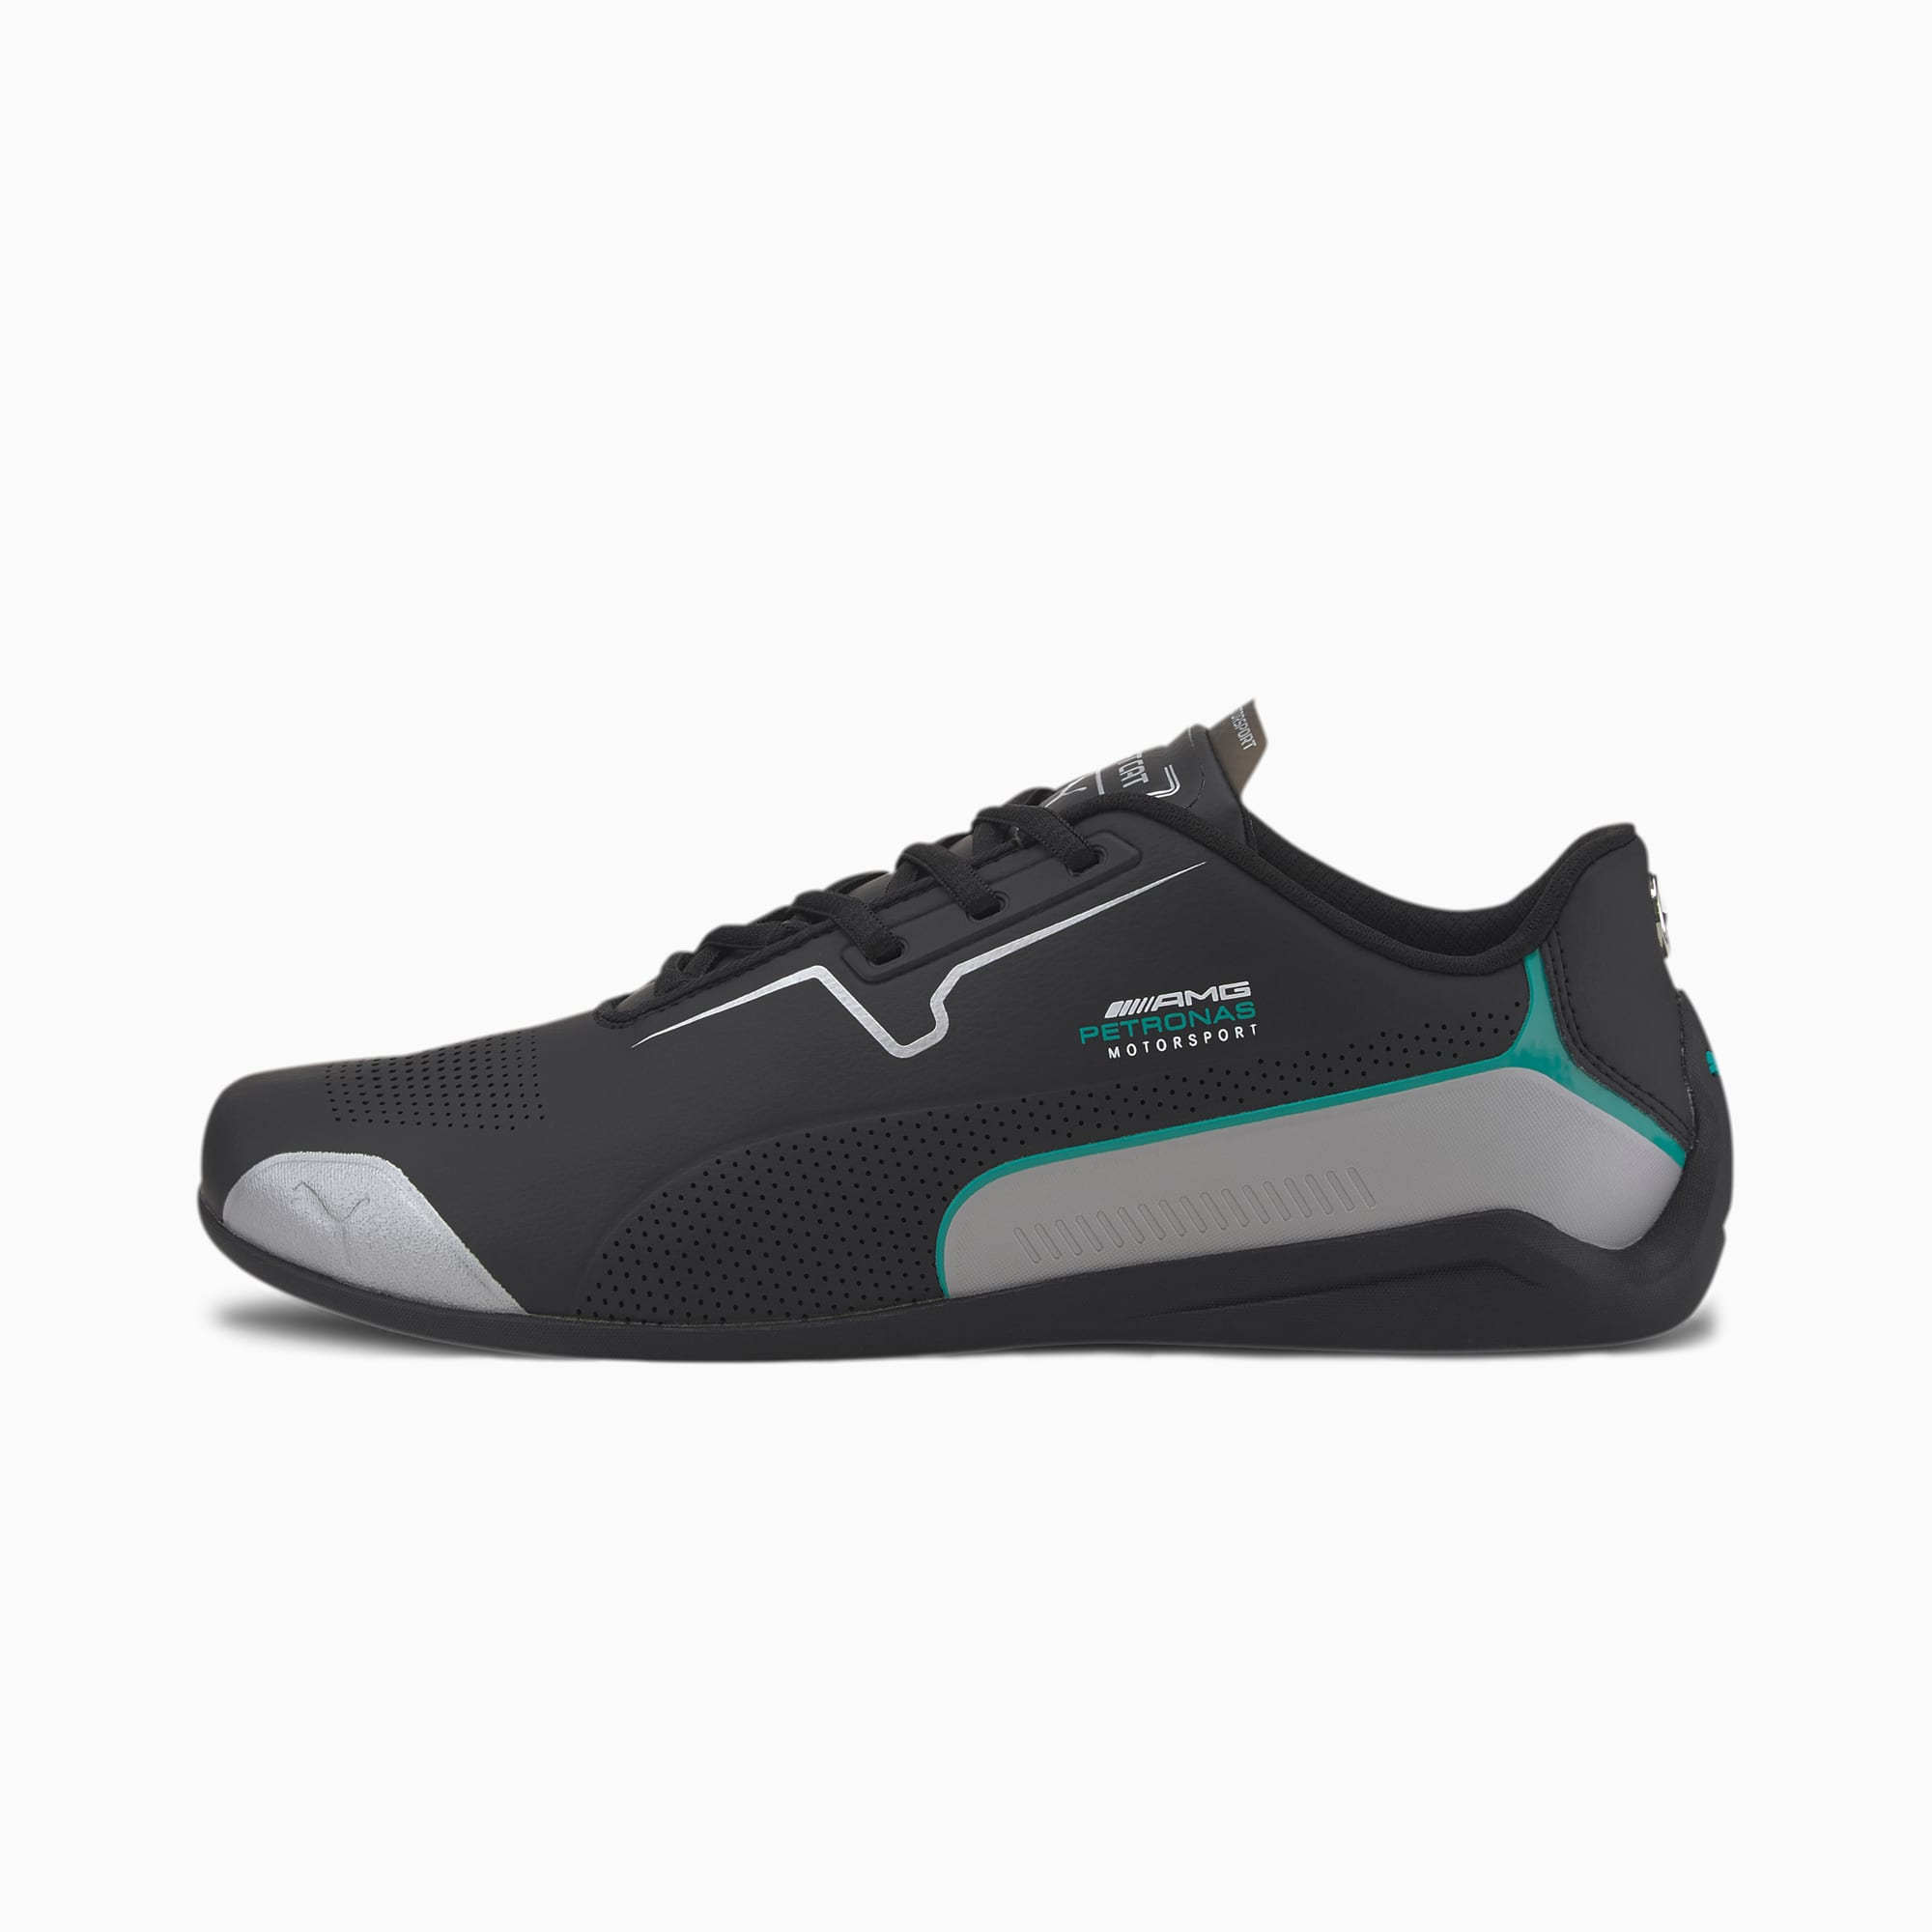 puma mercedes shoes